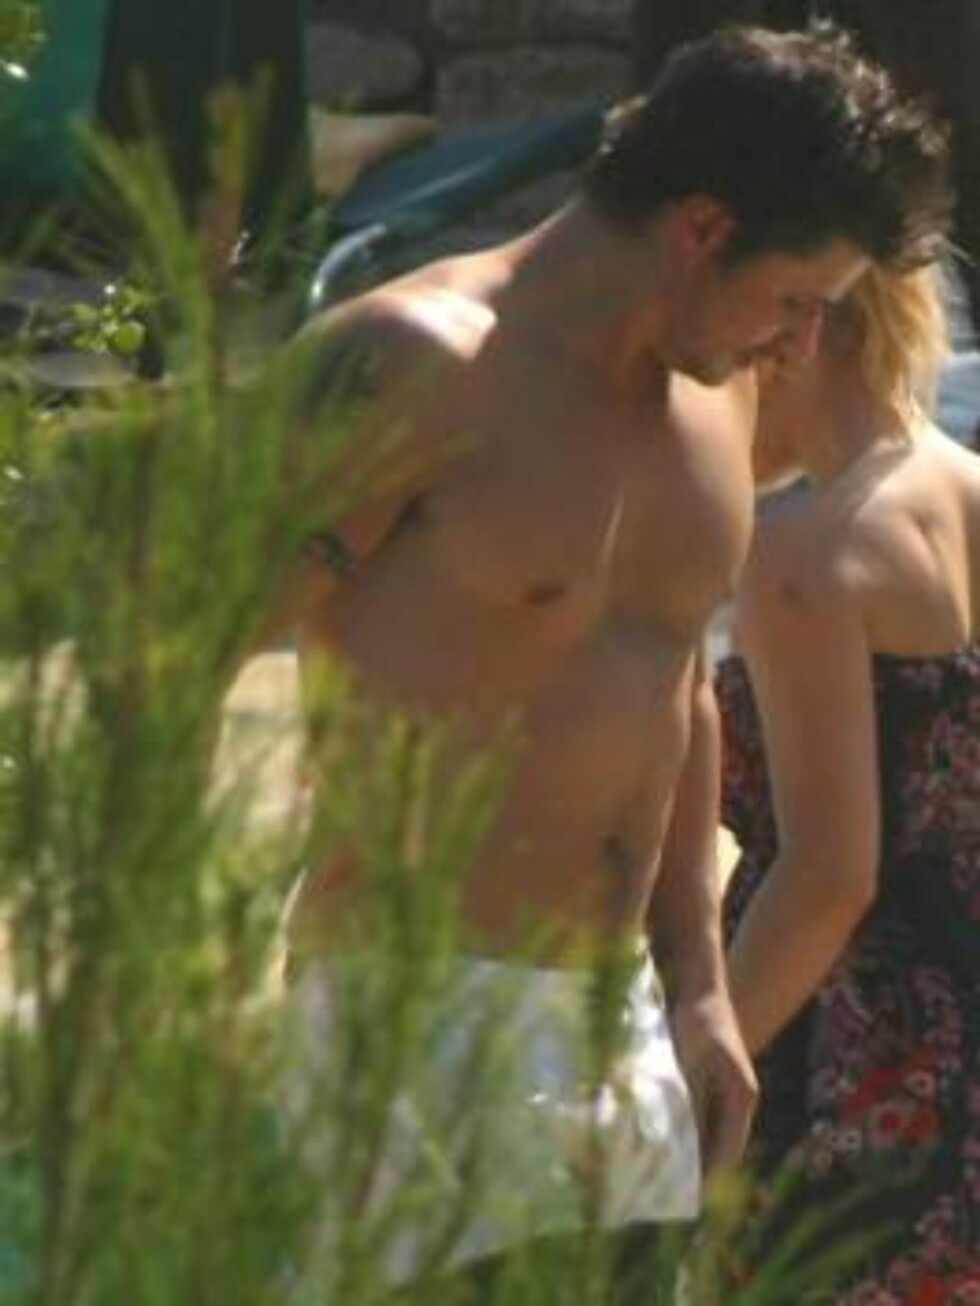 TUSCANY, ITALY 051011 - Jessica Simpson and her husband Nick Lachey enjoying their vacation an seems to be very much in love again.   **EXCLUSIVE**  Photo: Focus Europe Code: 4005  COPYRIGHT STELLA PICTURES Foto: Stella Pictures